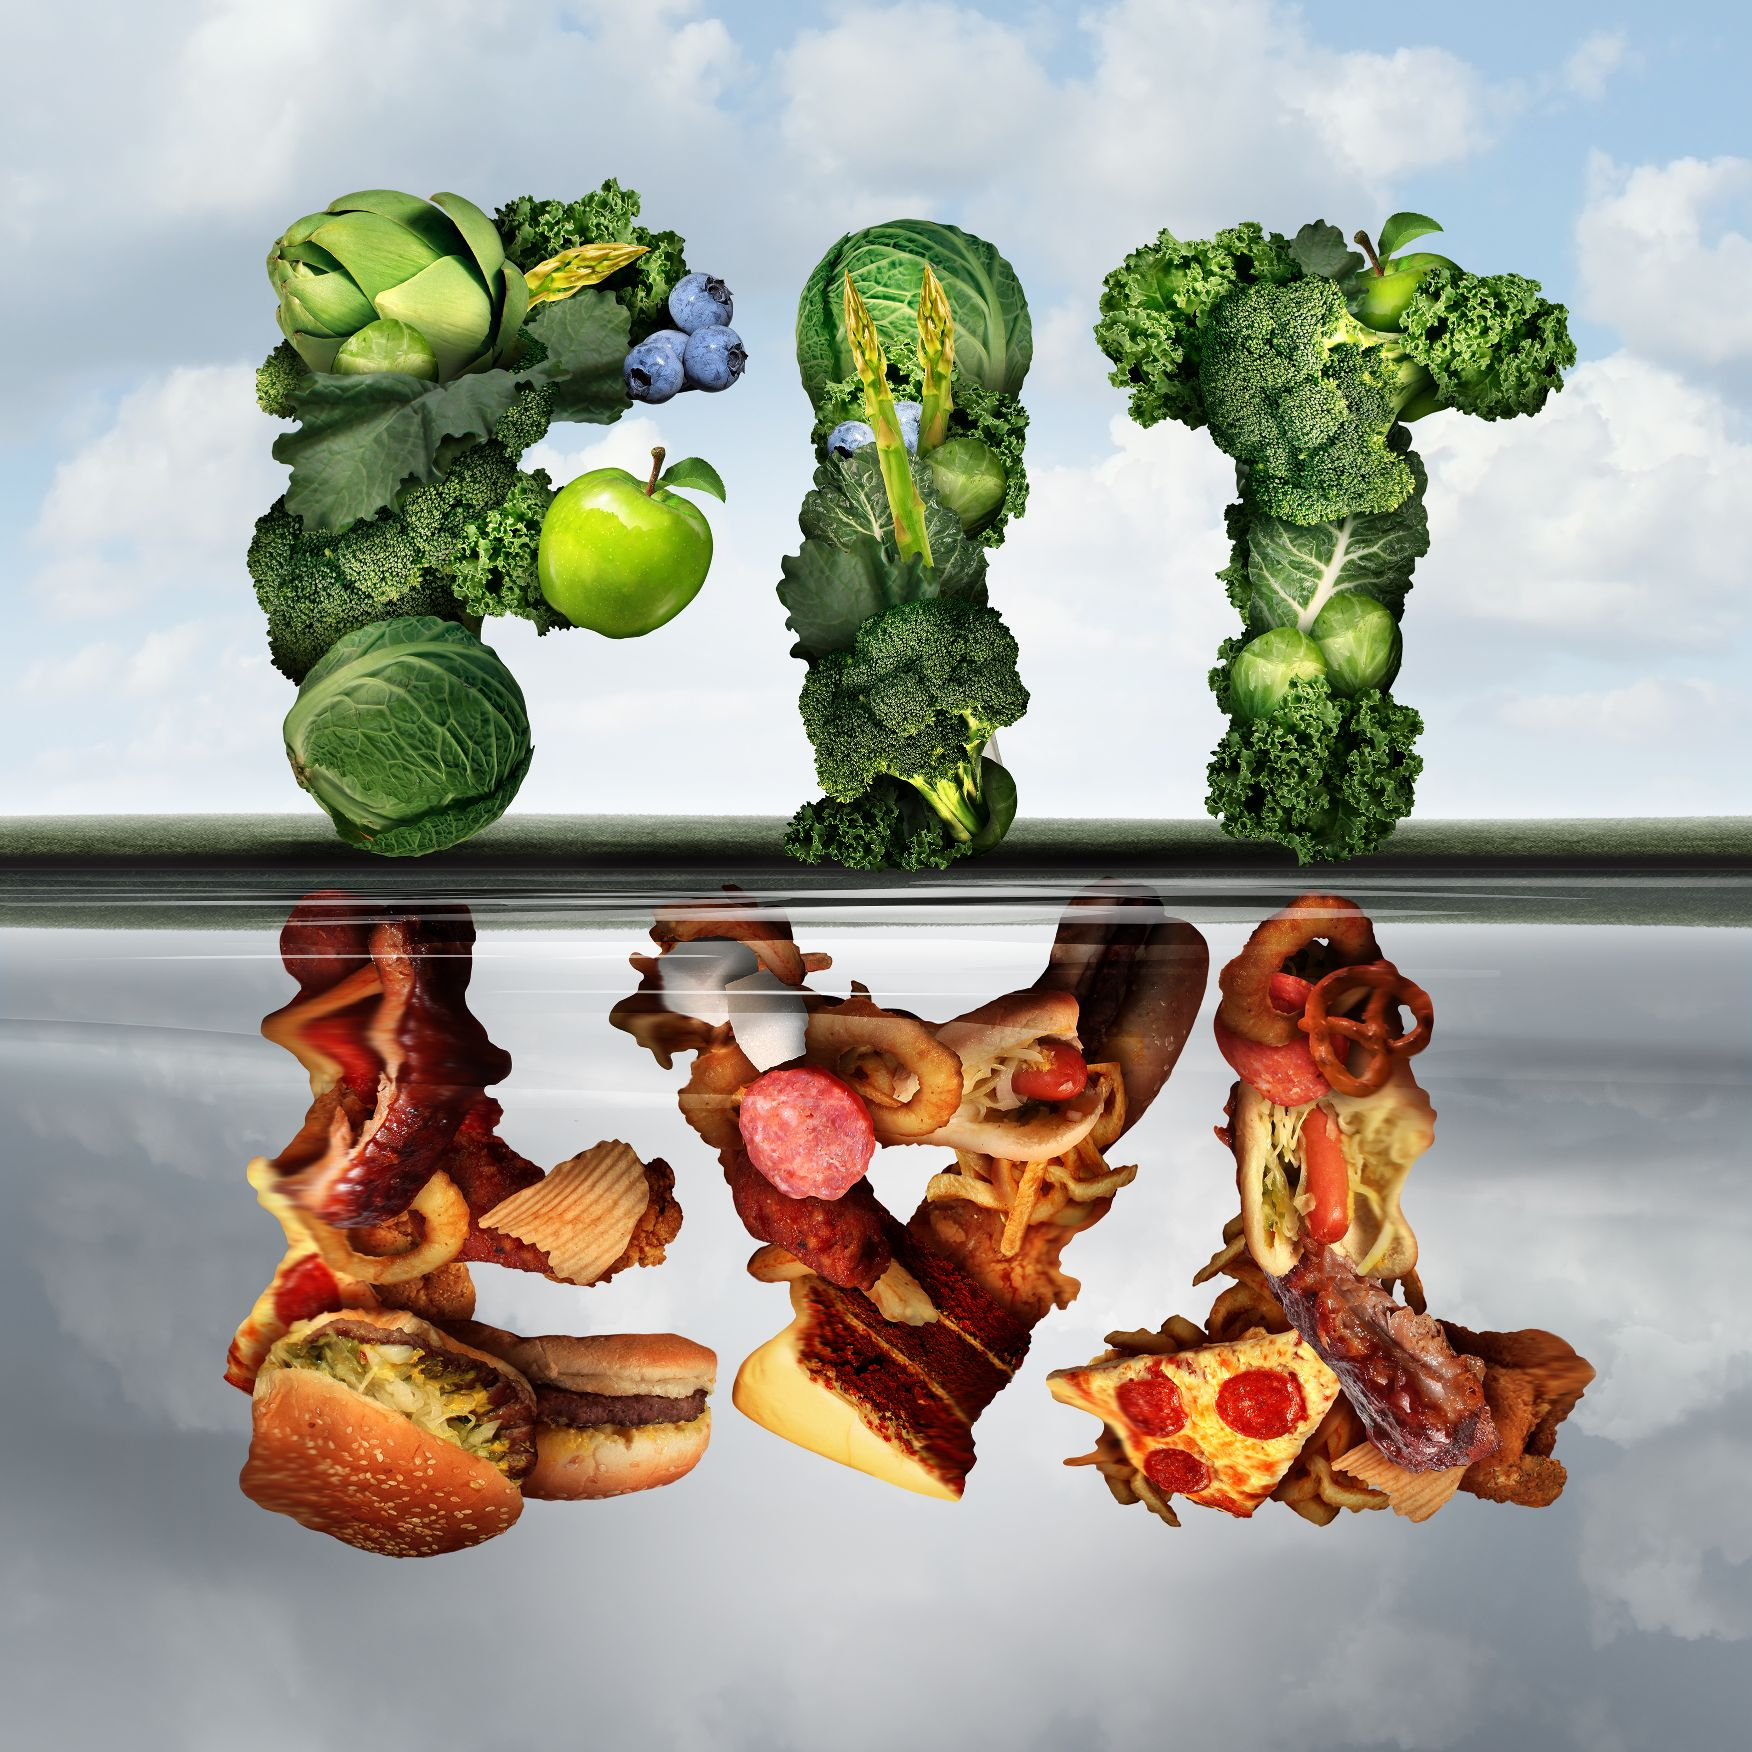 The Fool's Diet A Trend That Needs to End